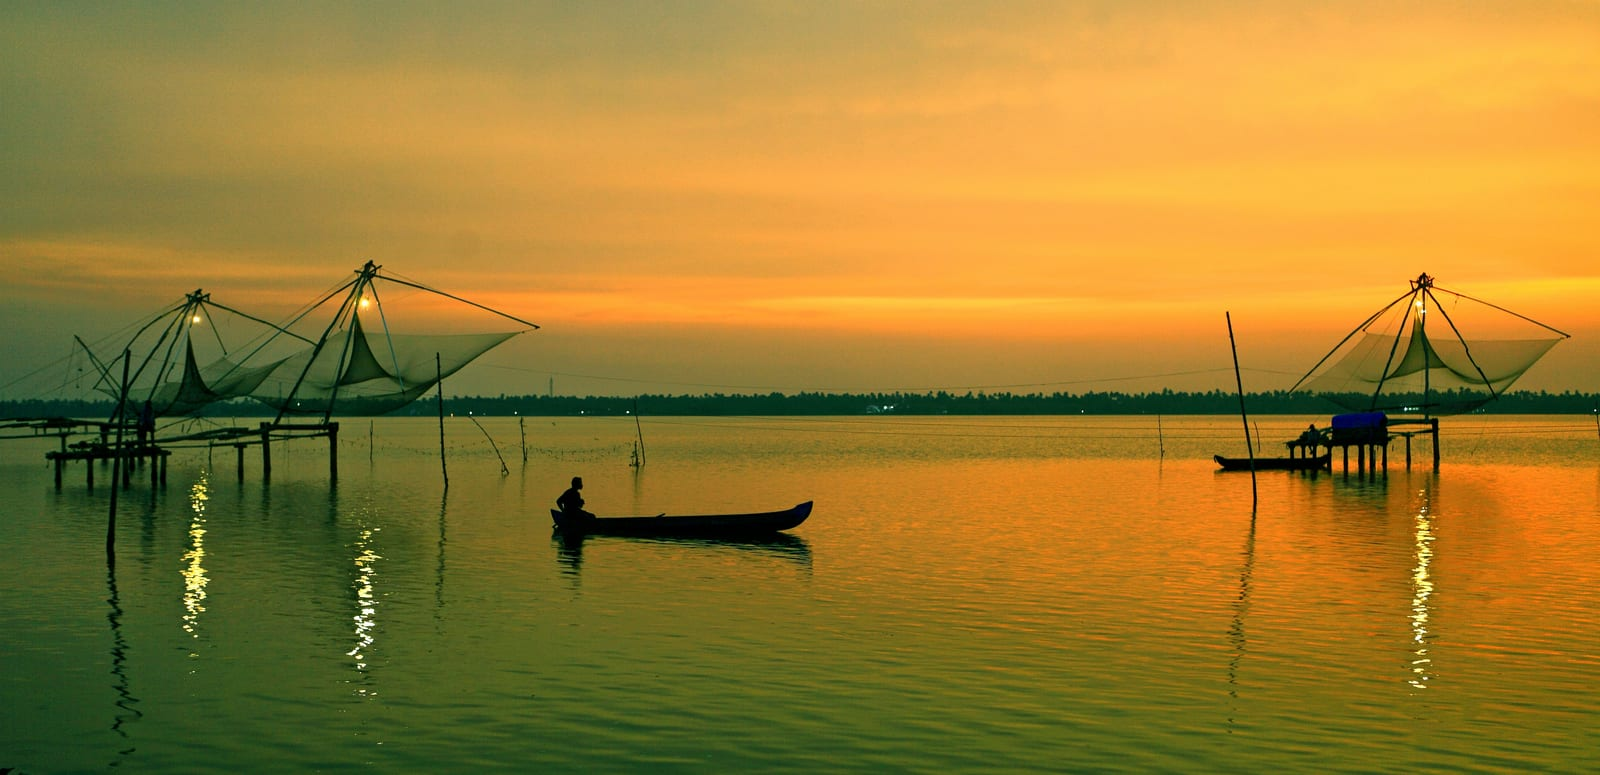 1463255770_kumbalangi_backwaters_kochi_1_378.jpg